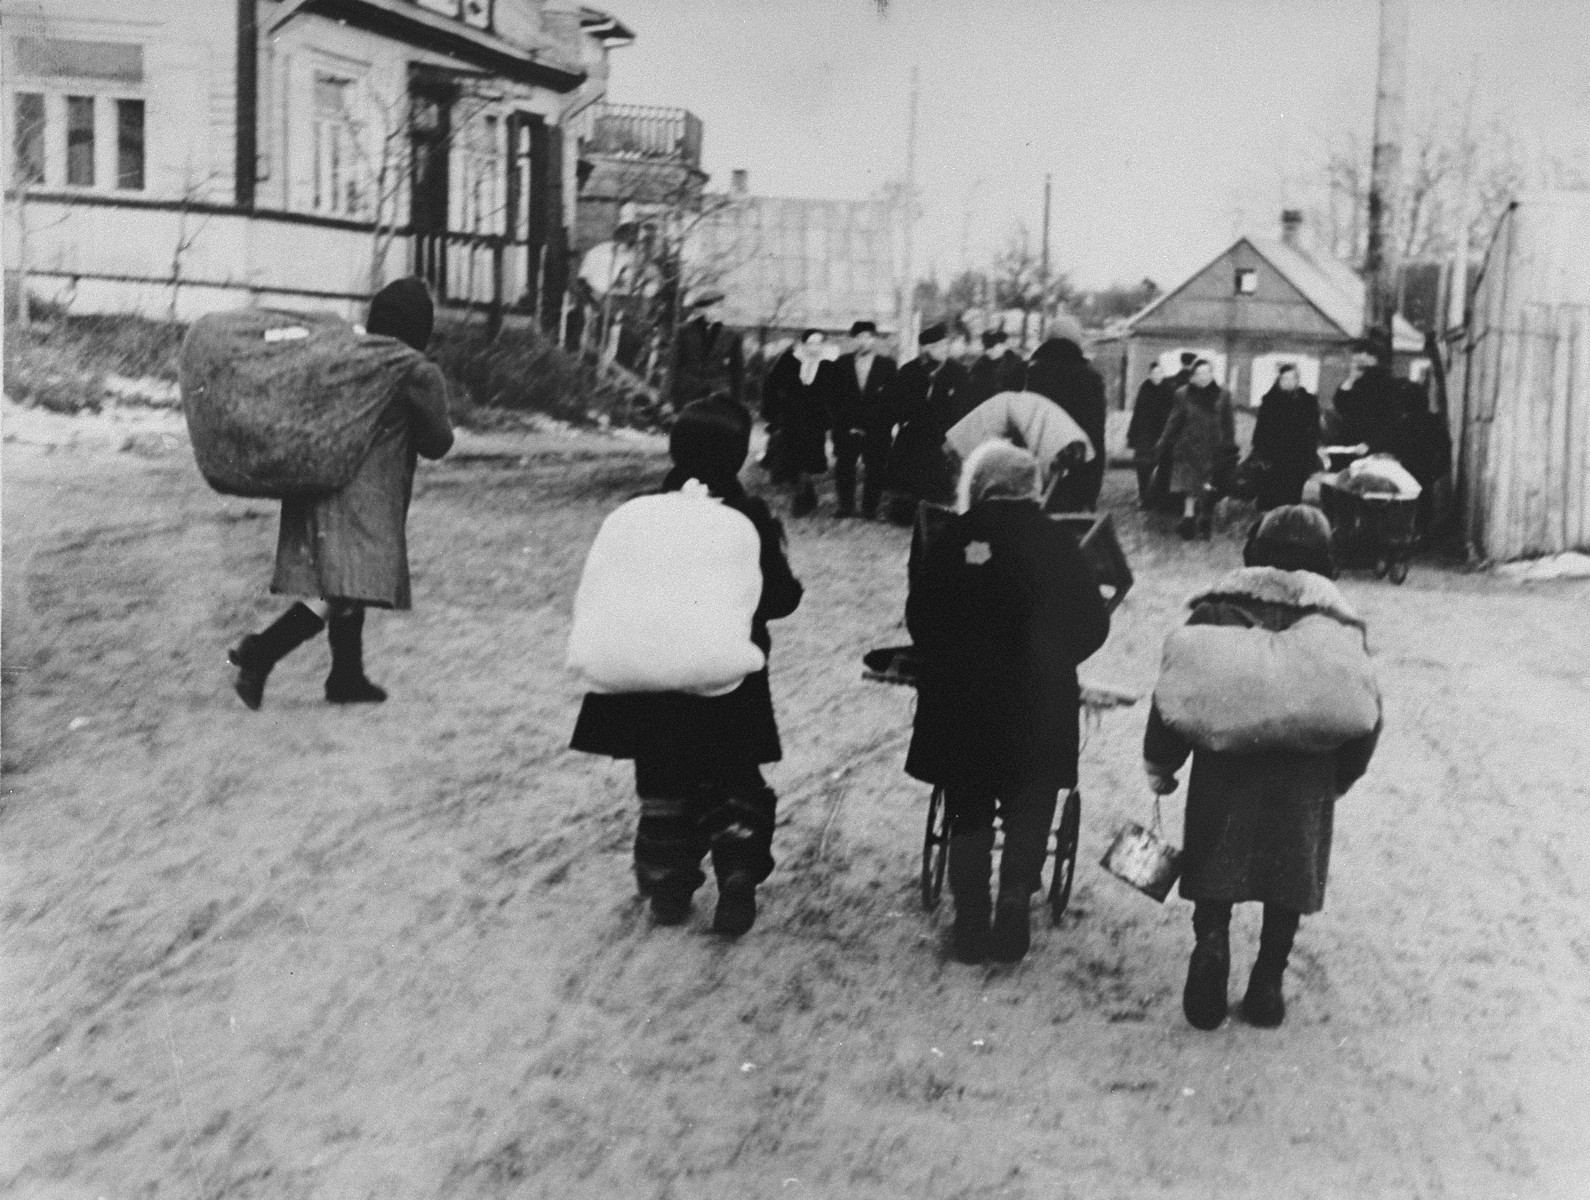 Jews move their household possessions to new quarters following the Small Ghetto Action of October 4, 1941.